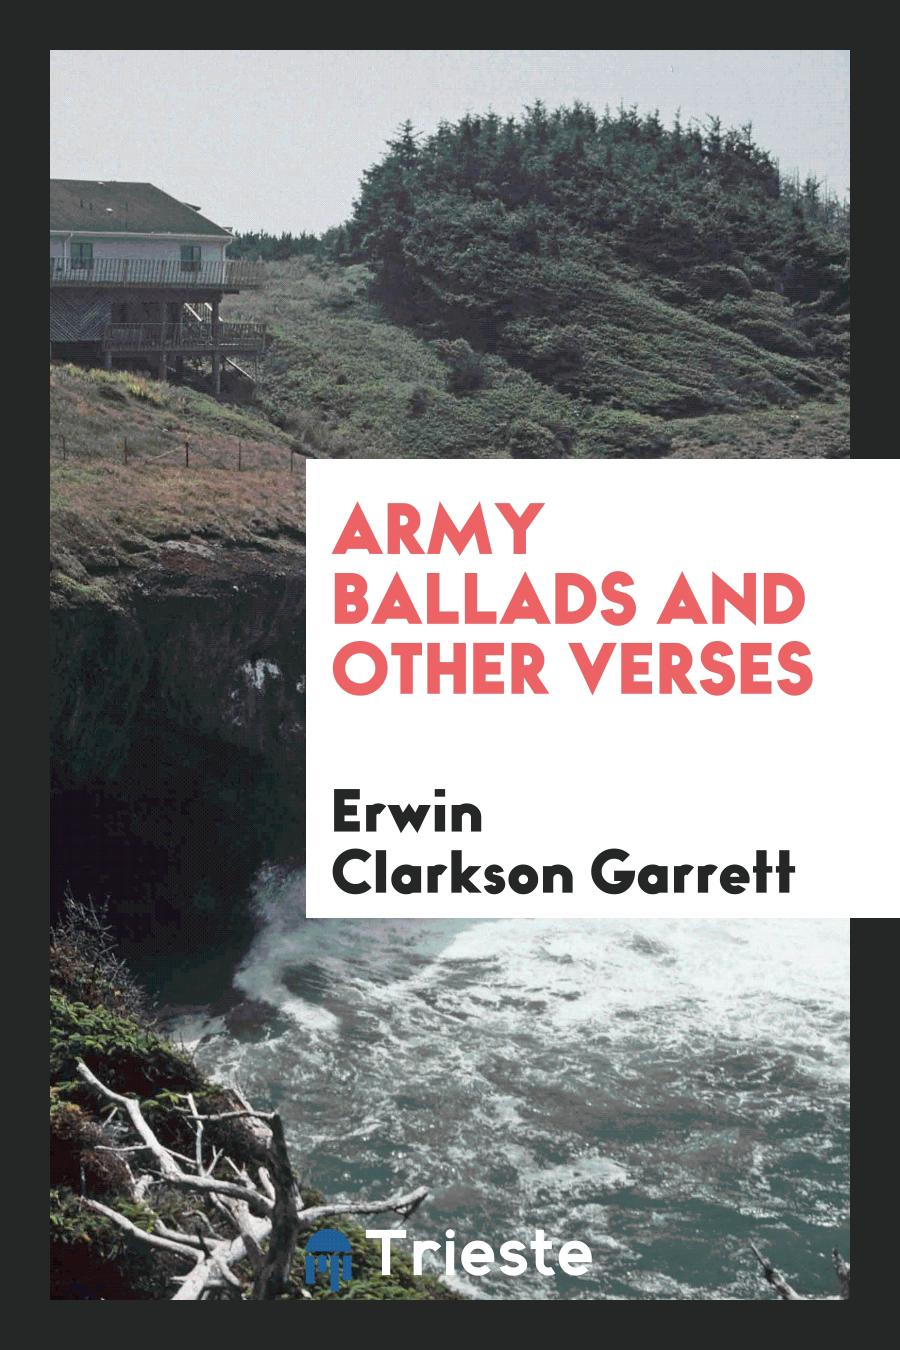 Army Ballads and Other Verses